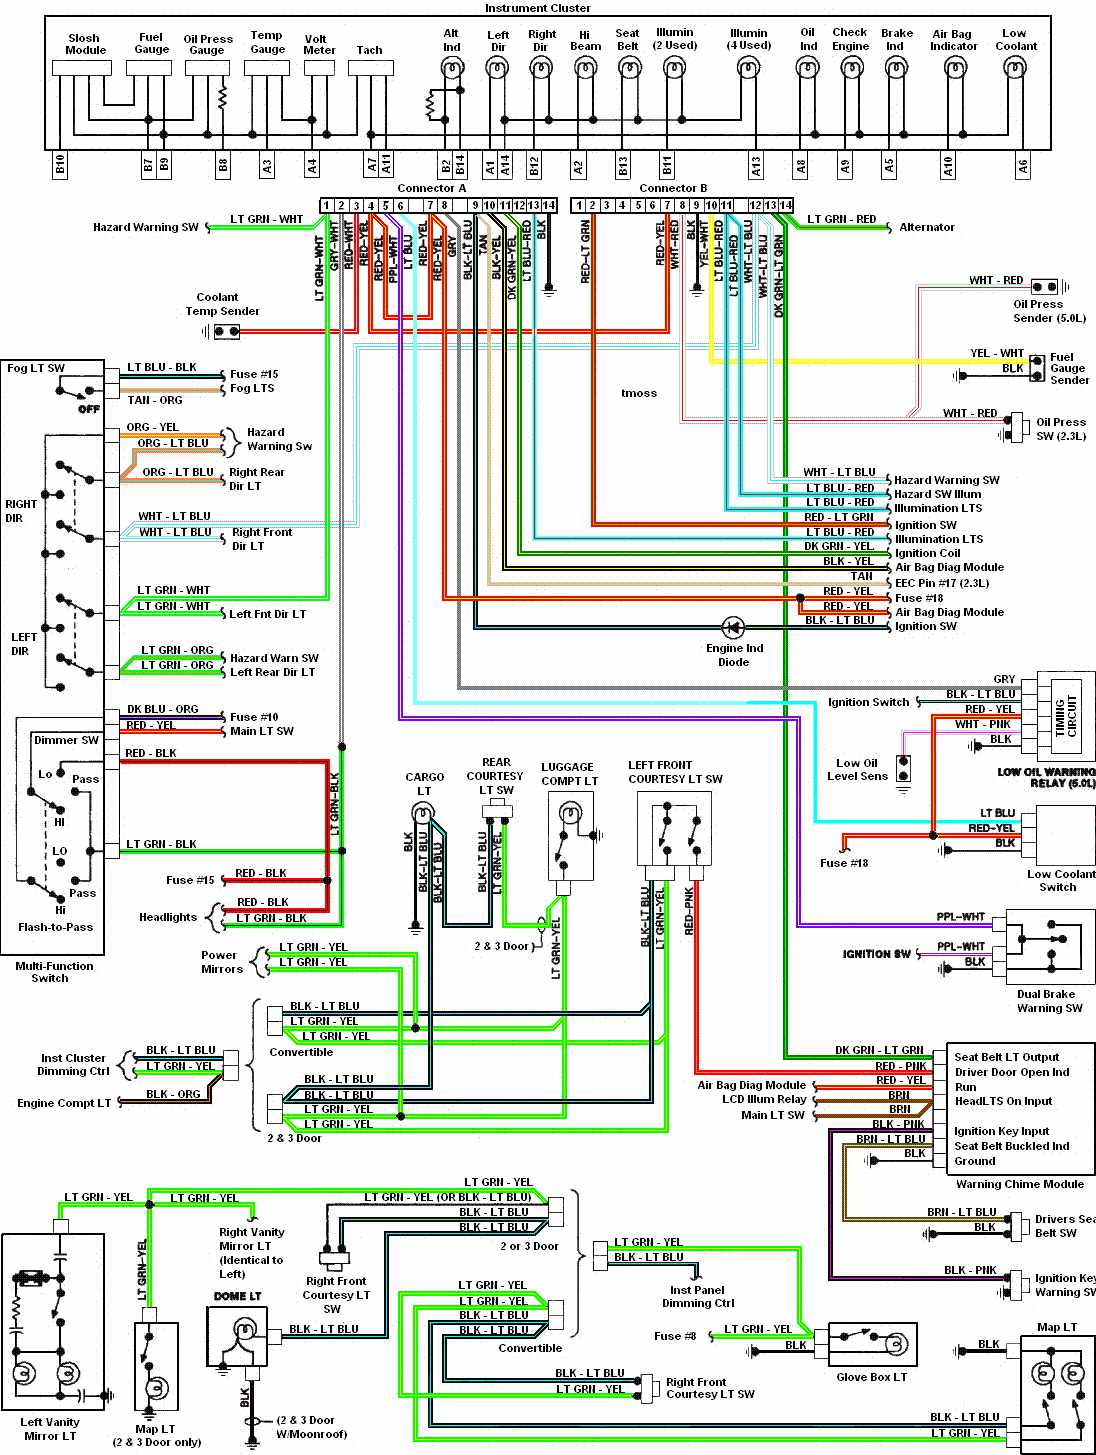 Instrument+Cluster+Wiring+Diagrams+Of+1987+Ford+Mustang+3rd+Generation 1985 ford radio wiring diagram 1983 ford radio wiring \u2022 wiring ford car radio wiring diagrams at creativeand.co